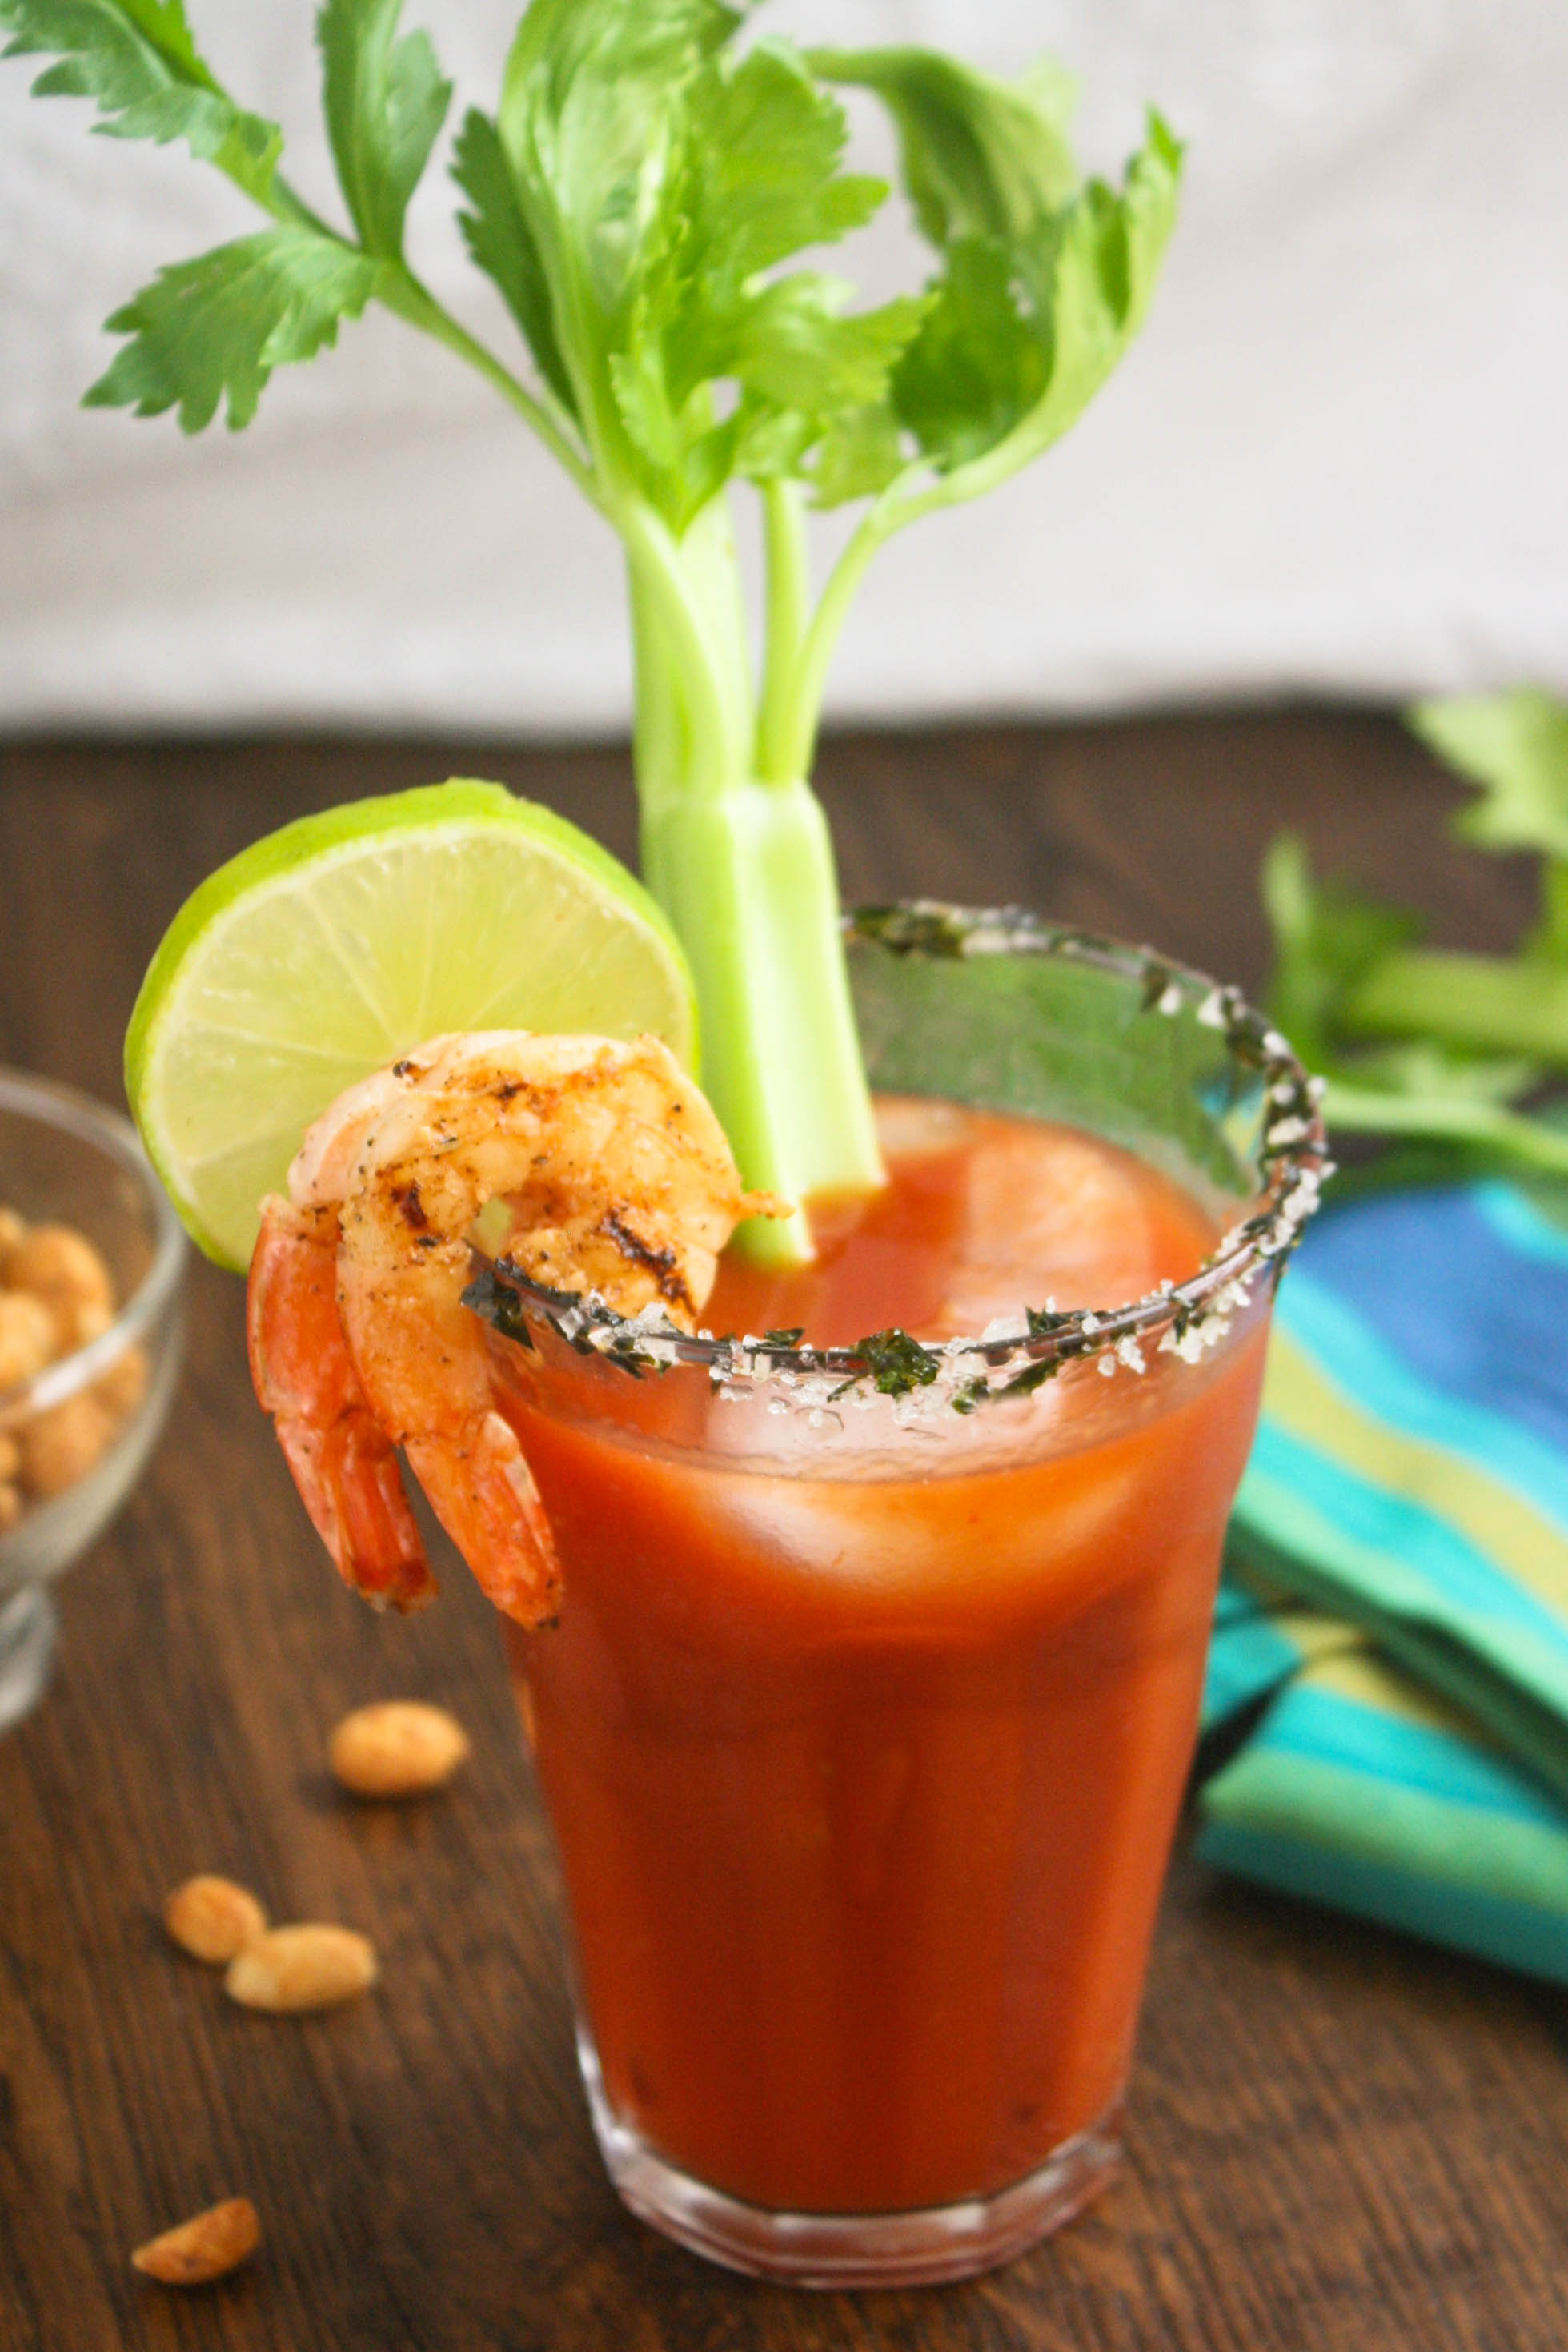 Asian Bloody Mary Cocktails are filled with great flavor. They include a fun garnish, too, and are perfect to serve for your next brunch!